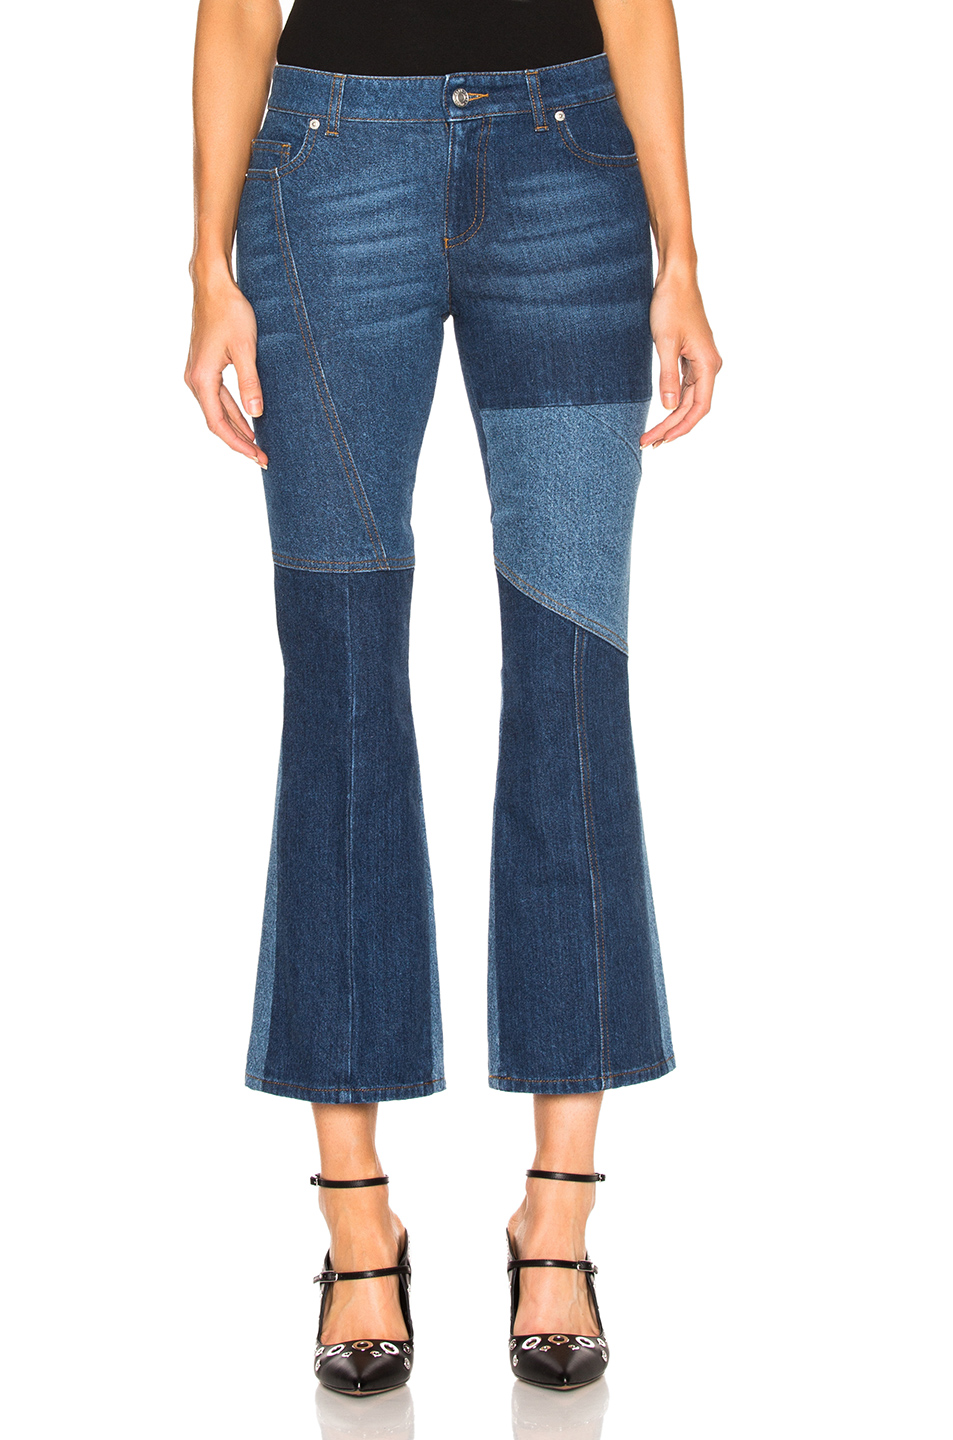 Alexander McQueen Patchwork Cropped Flare Jeans in Blue